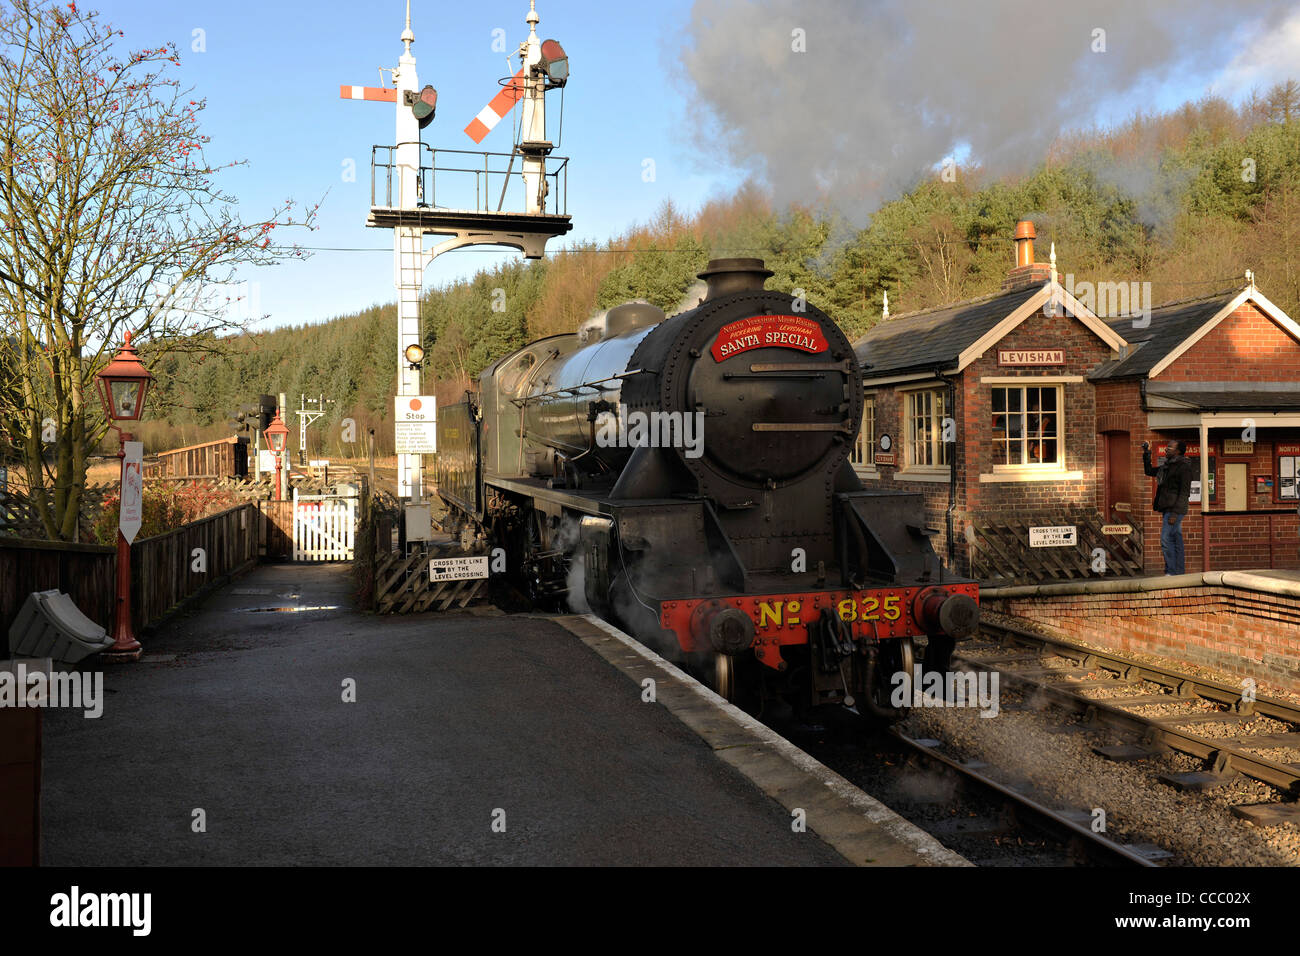 S15 Maunsell 825 on Santa Special Duty at Levisham-1 - Stock Image